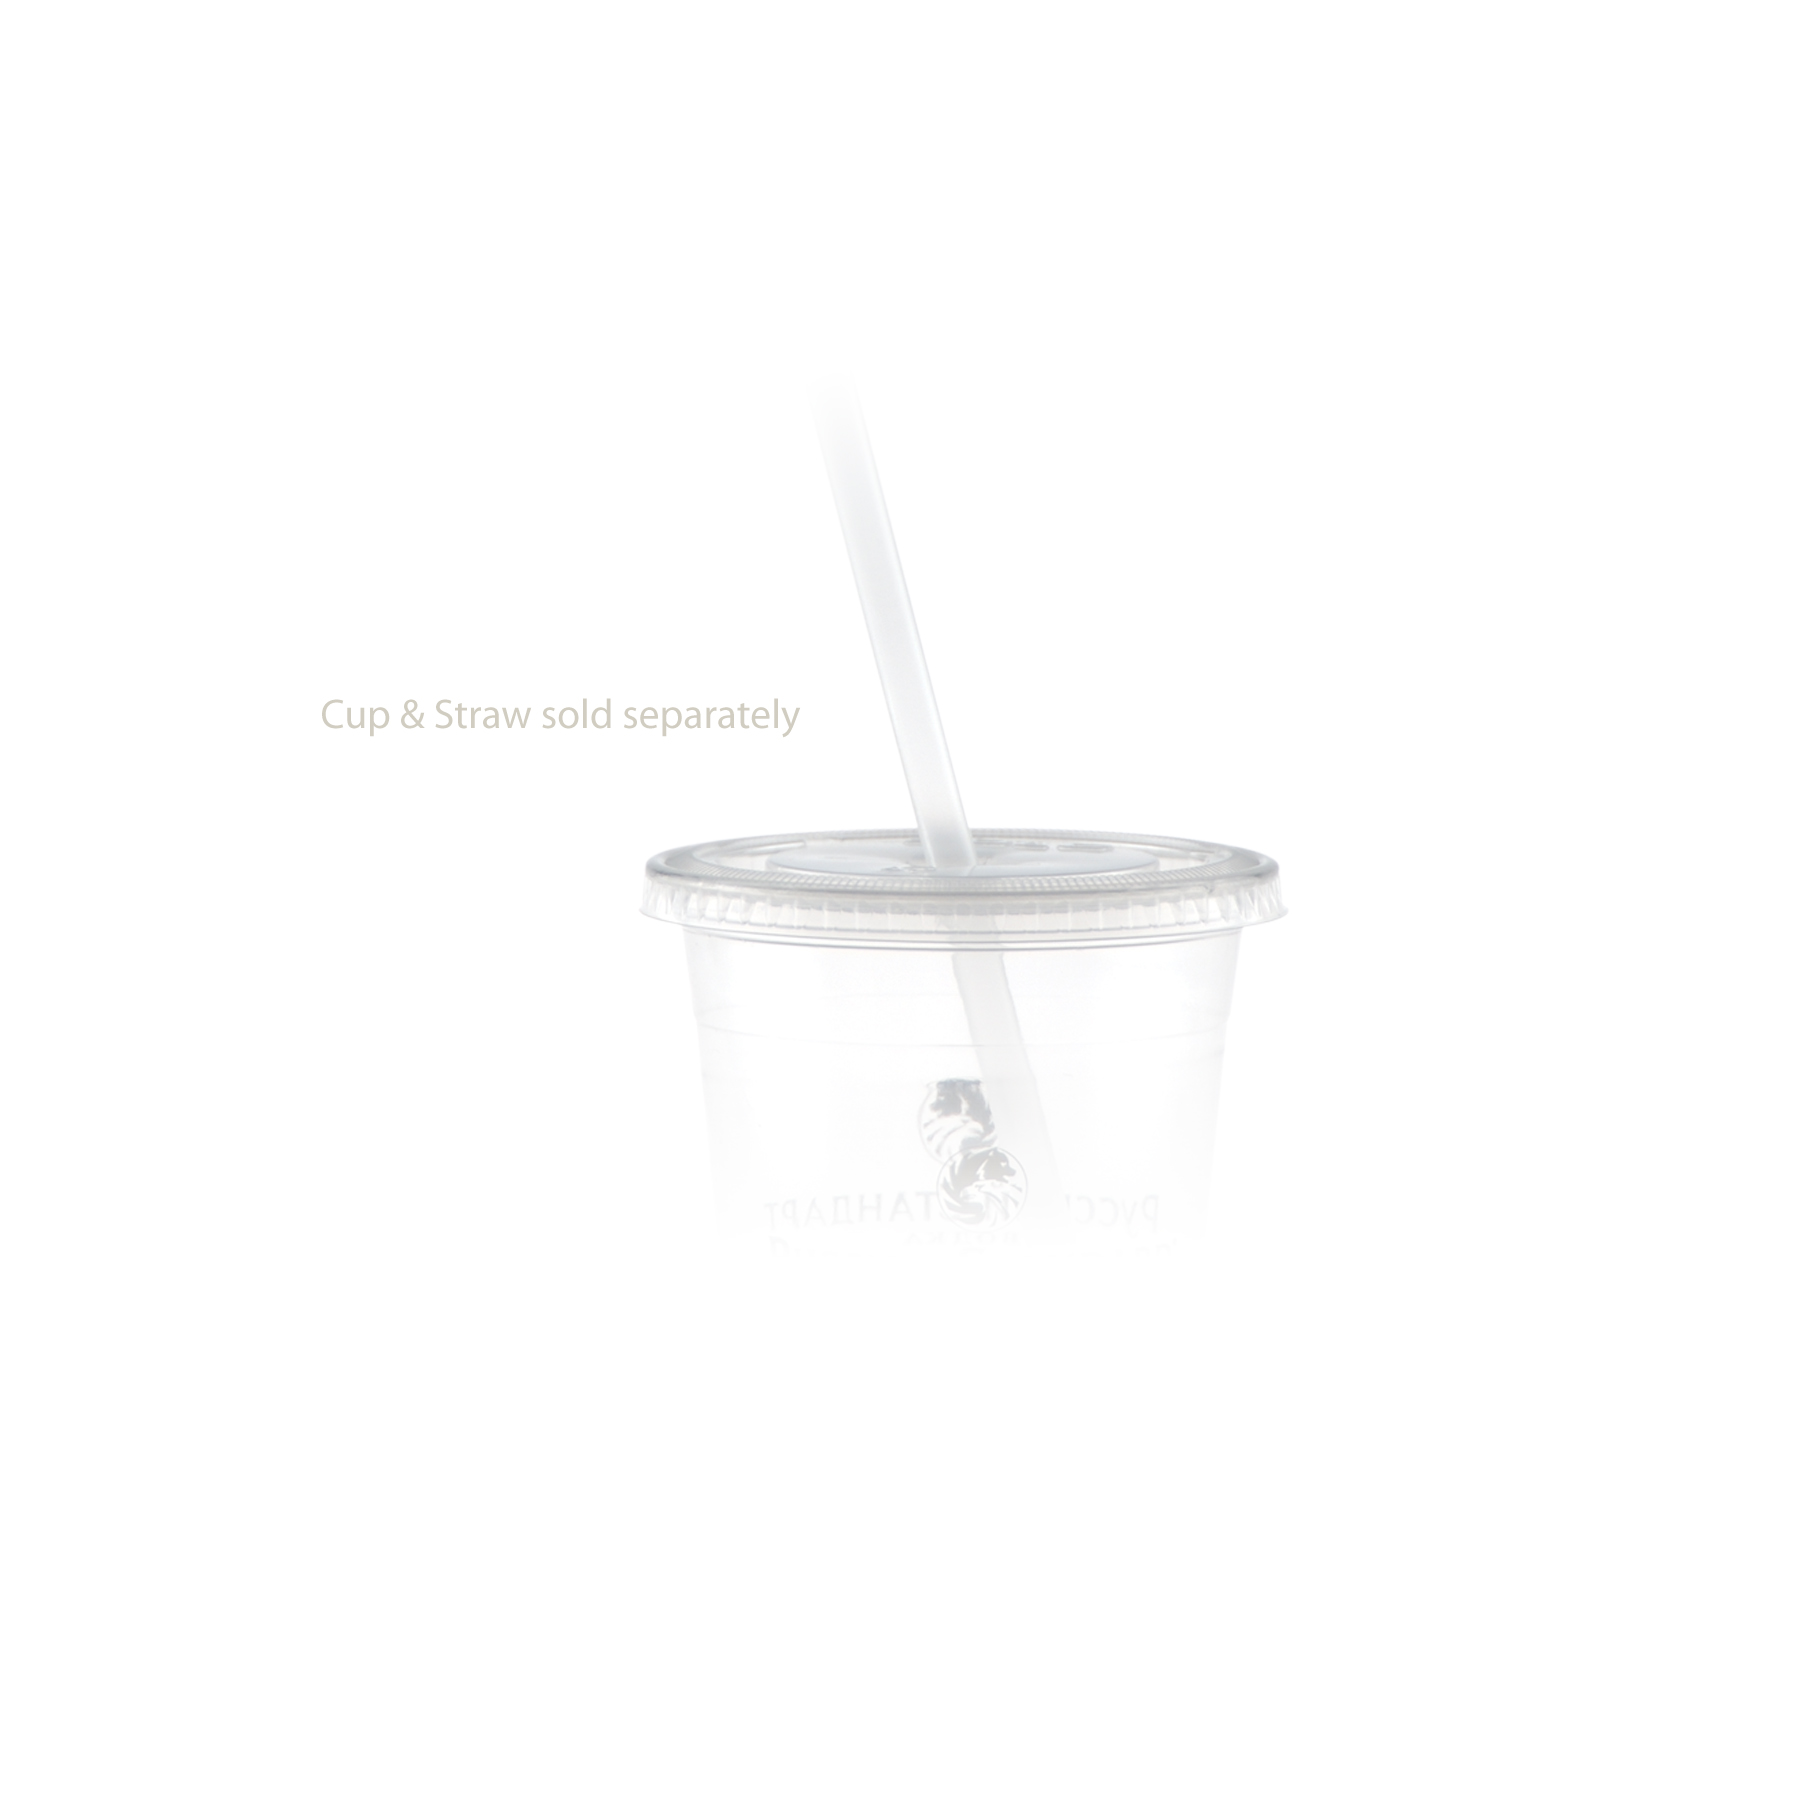 12/14 oz Soft Sided Cup Straw Slot Lid - Clear